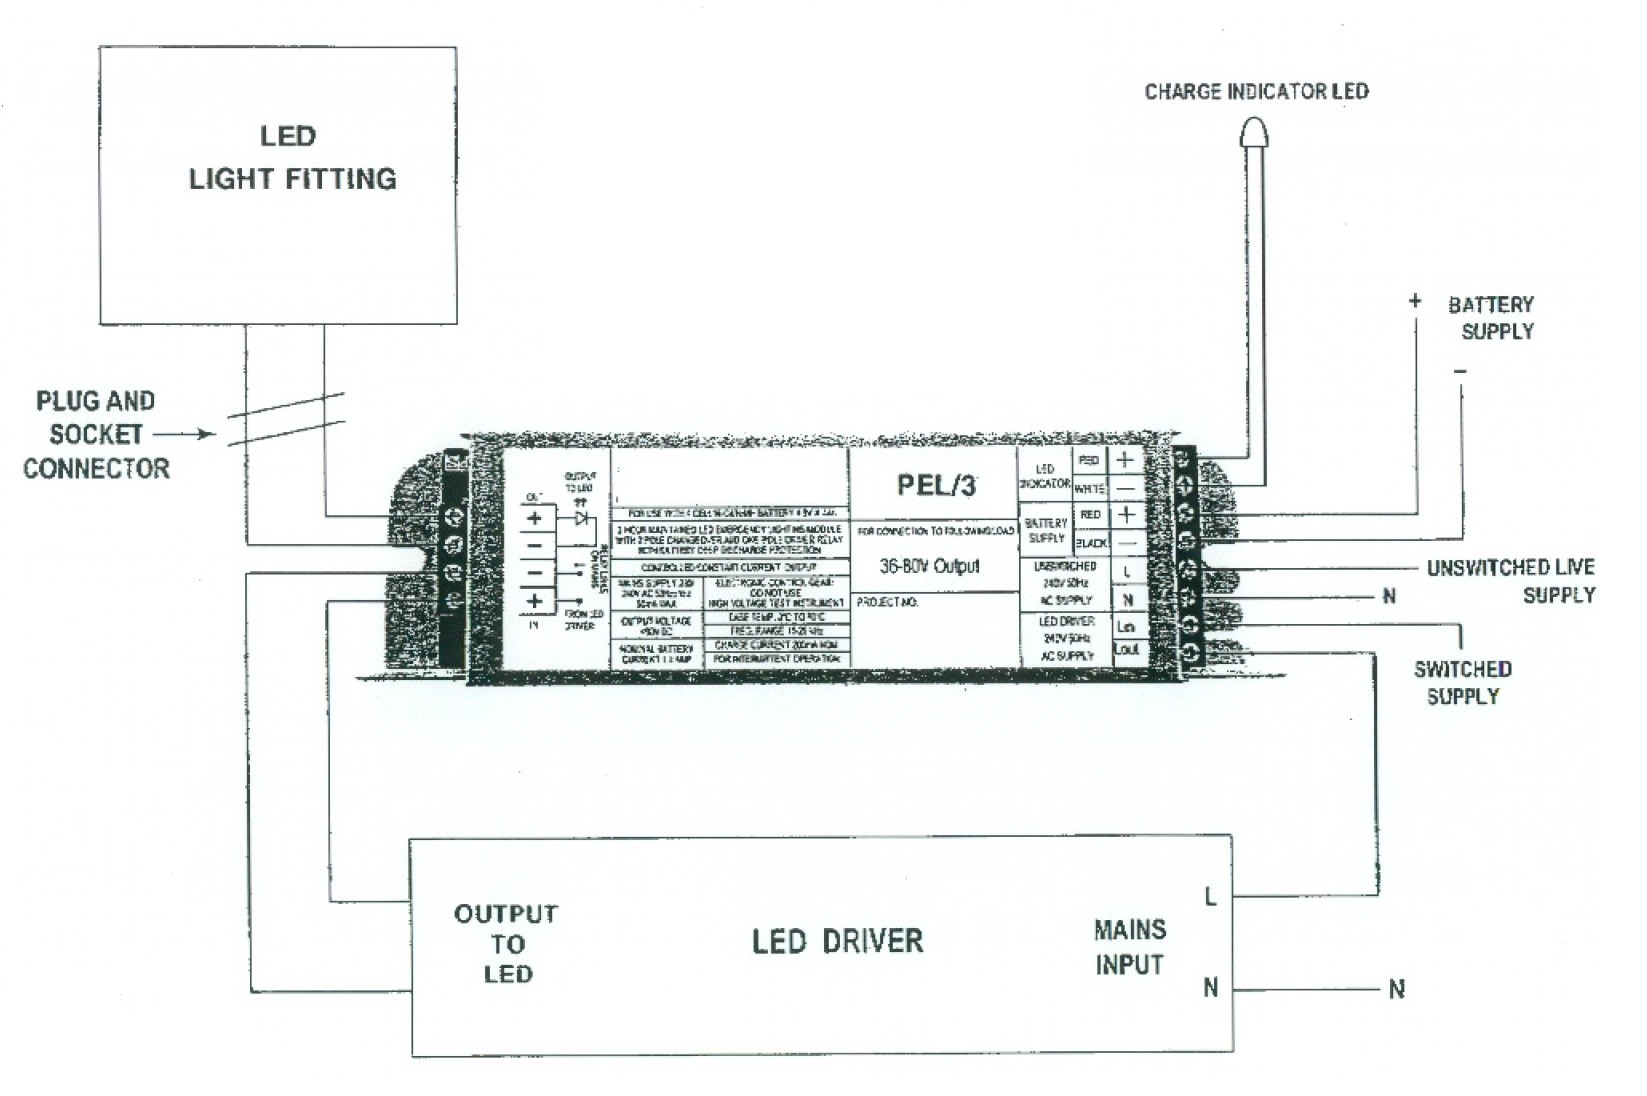 Downlight Transformer Wiring Diagram Guide And Troubleshooting Of Step Down 480 To 240 For Downlights With Transformers Online Rh 50 Ccainternational De Volt